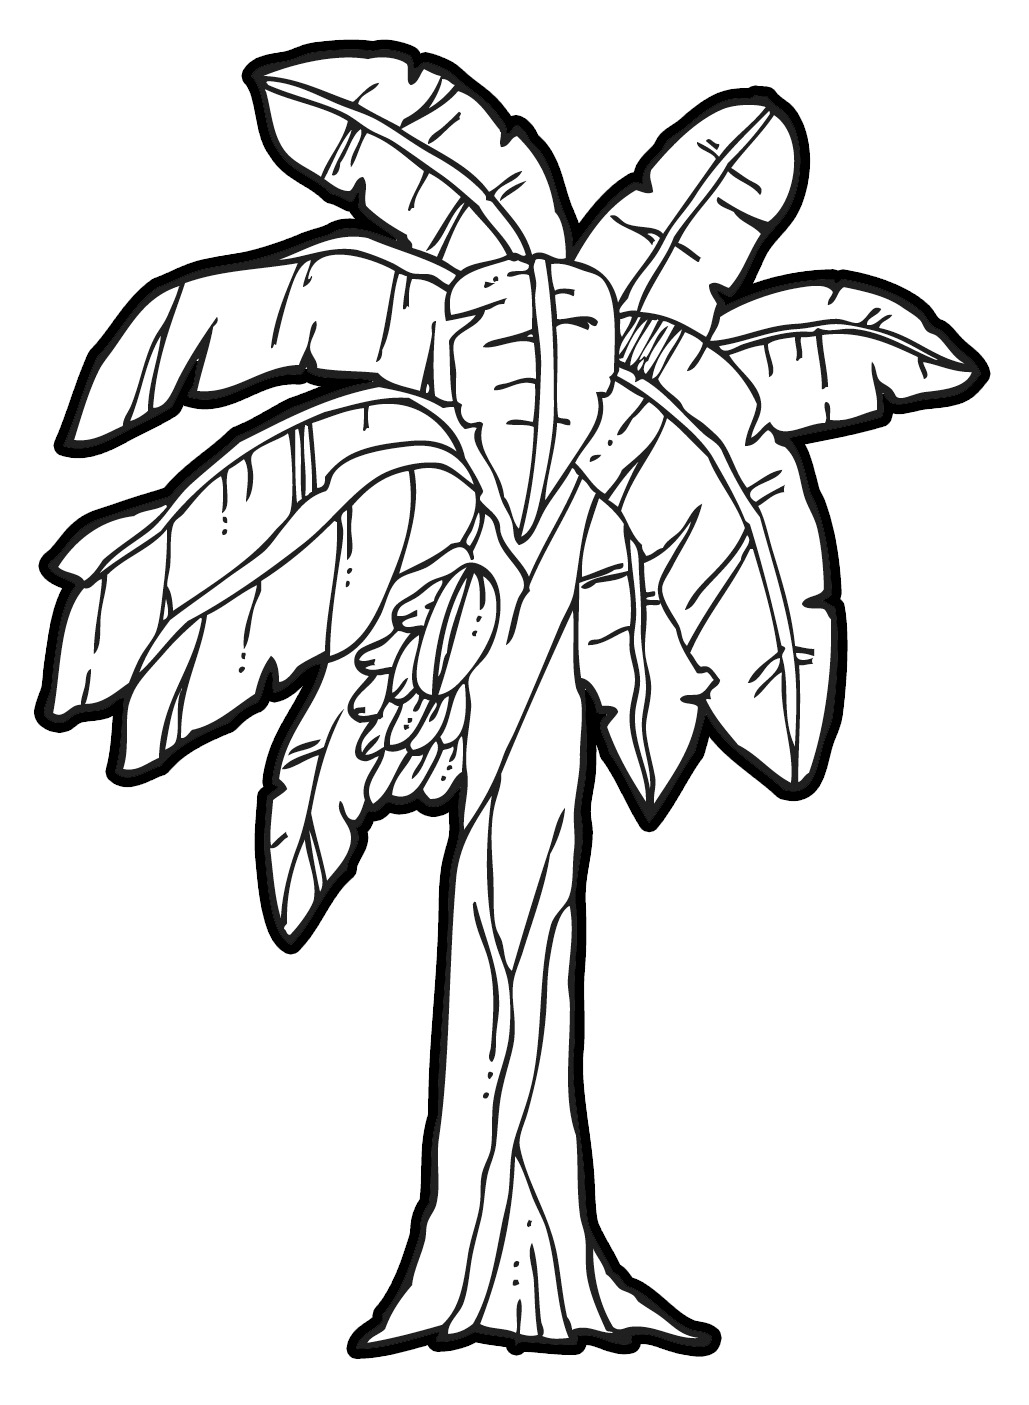 1029x1405 Pencil Drawing Of A Banana Plant Plant Clipart Banana Tree